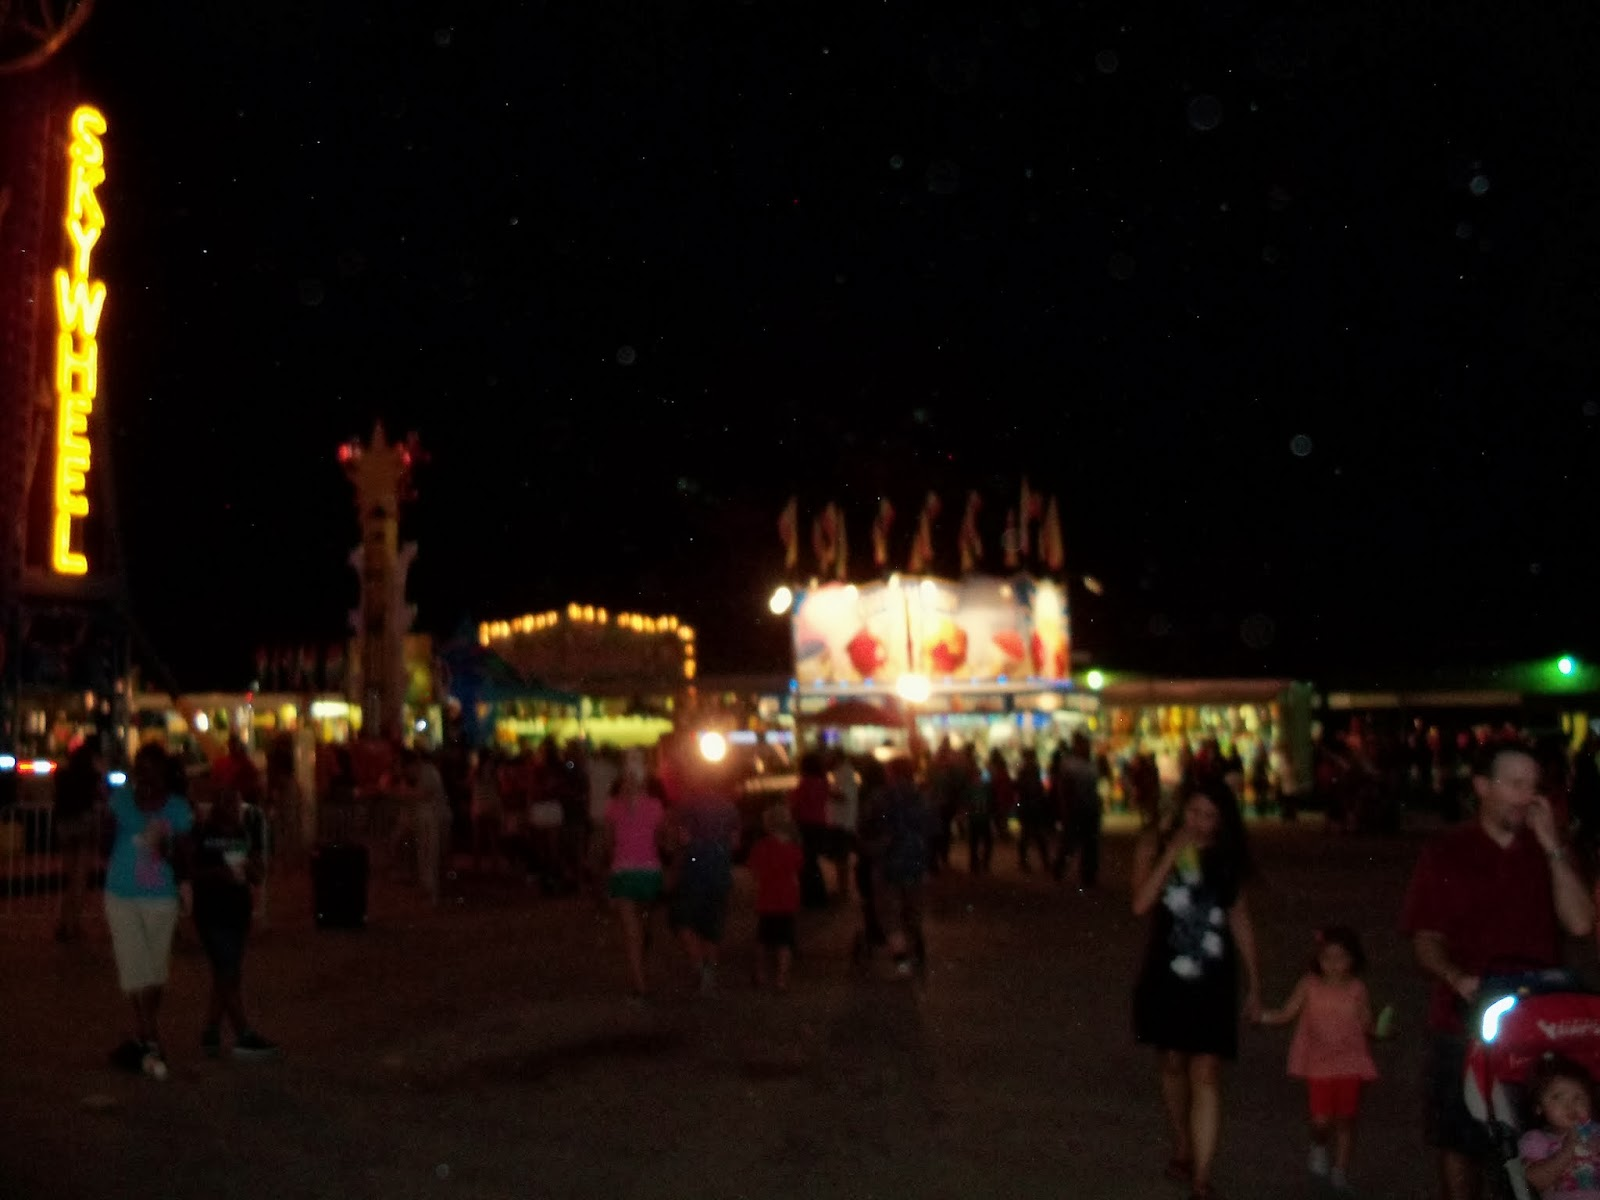 Fort Bend County Fair 2013 - 115_8017.JPG